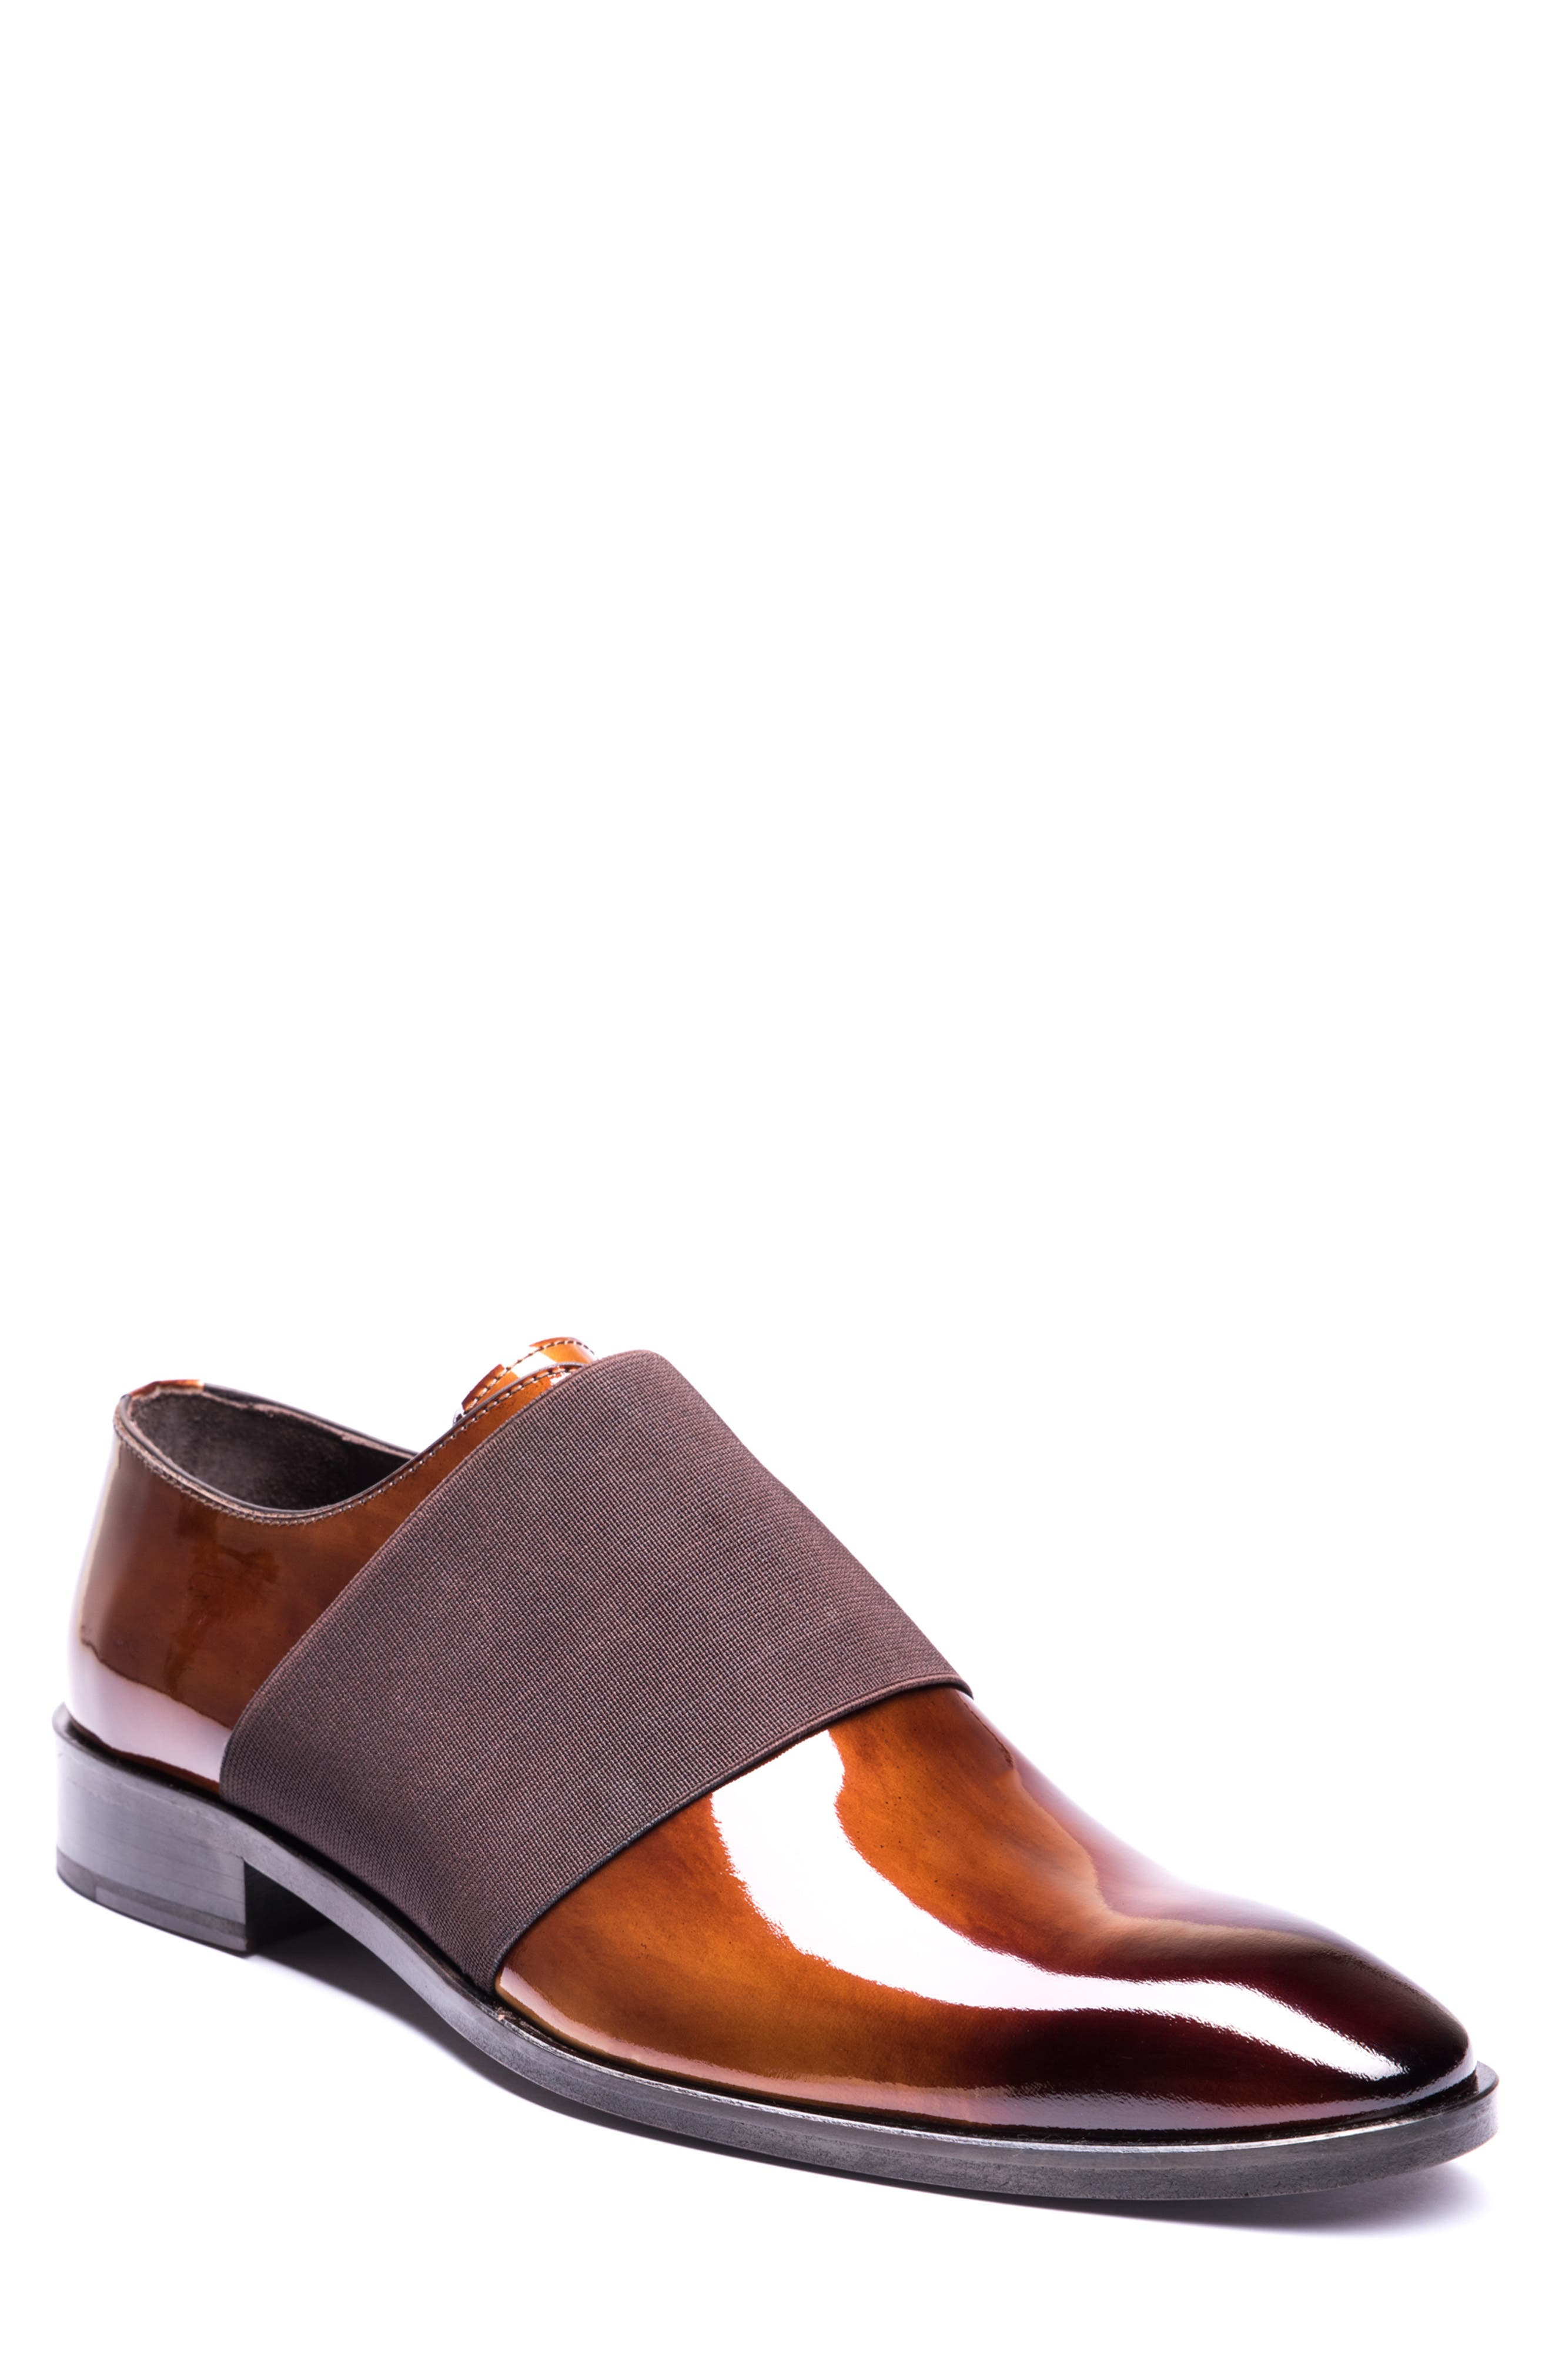 JARED LANG Vincenzo Whole Cut Slip-On, Main, color, BROWN LEATHER